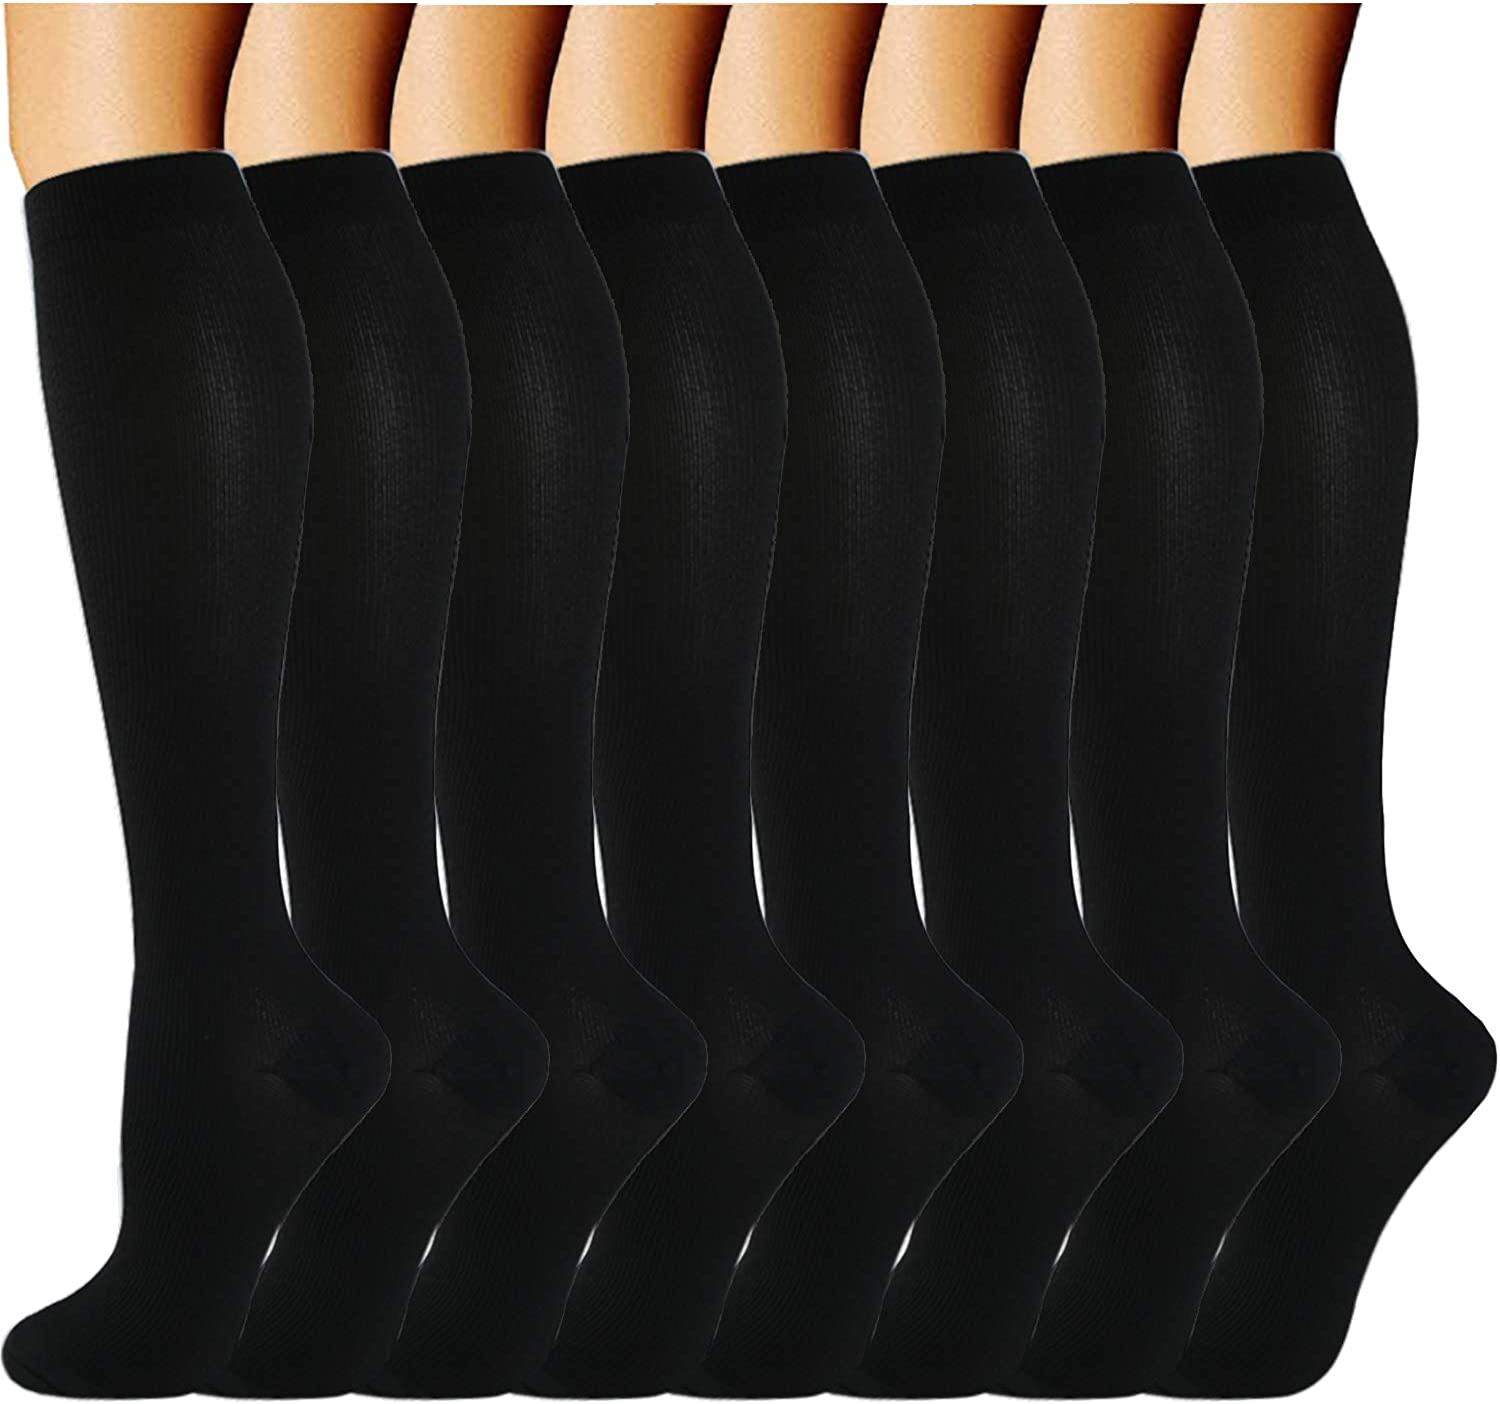 ACTINPUT Compression Socks (8 Pairs) for Women & Men 15-20mmHg - Best Medical,Running,Nursing,Hiking,Recovery & Flight Socks